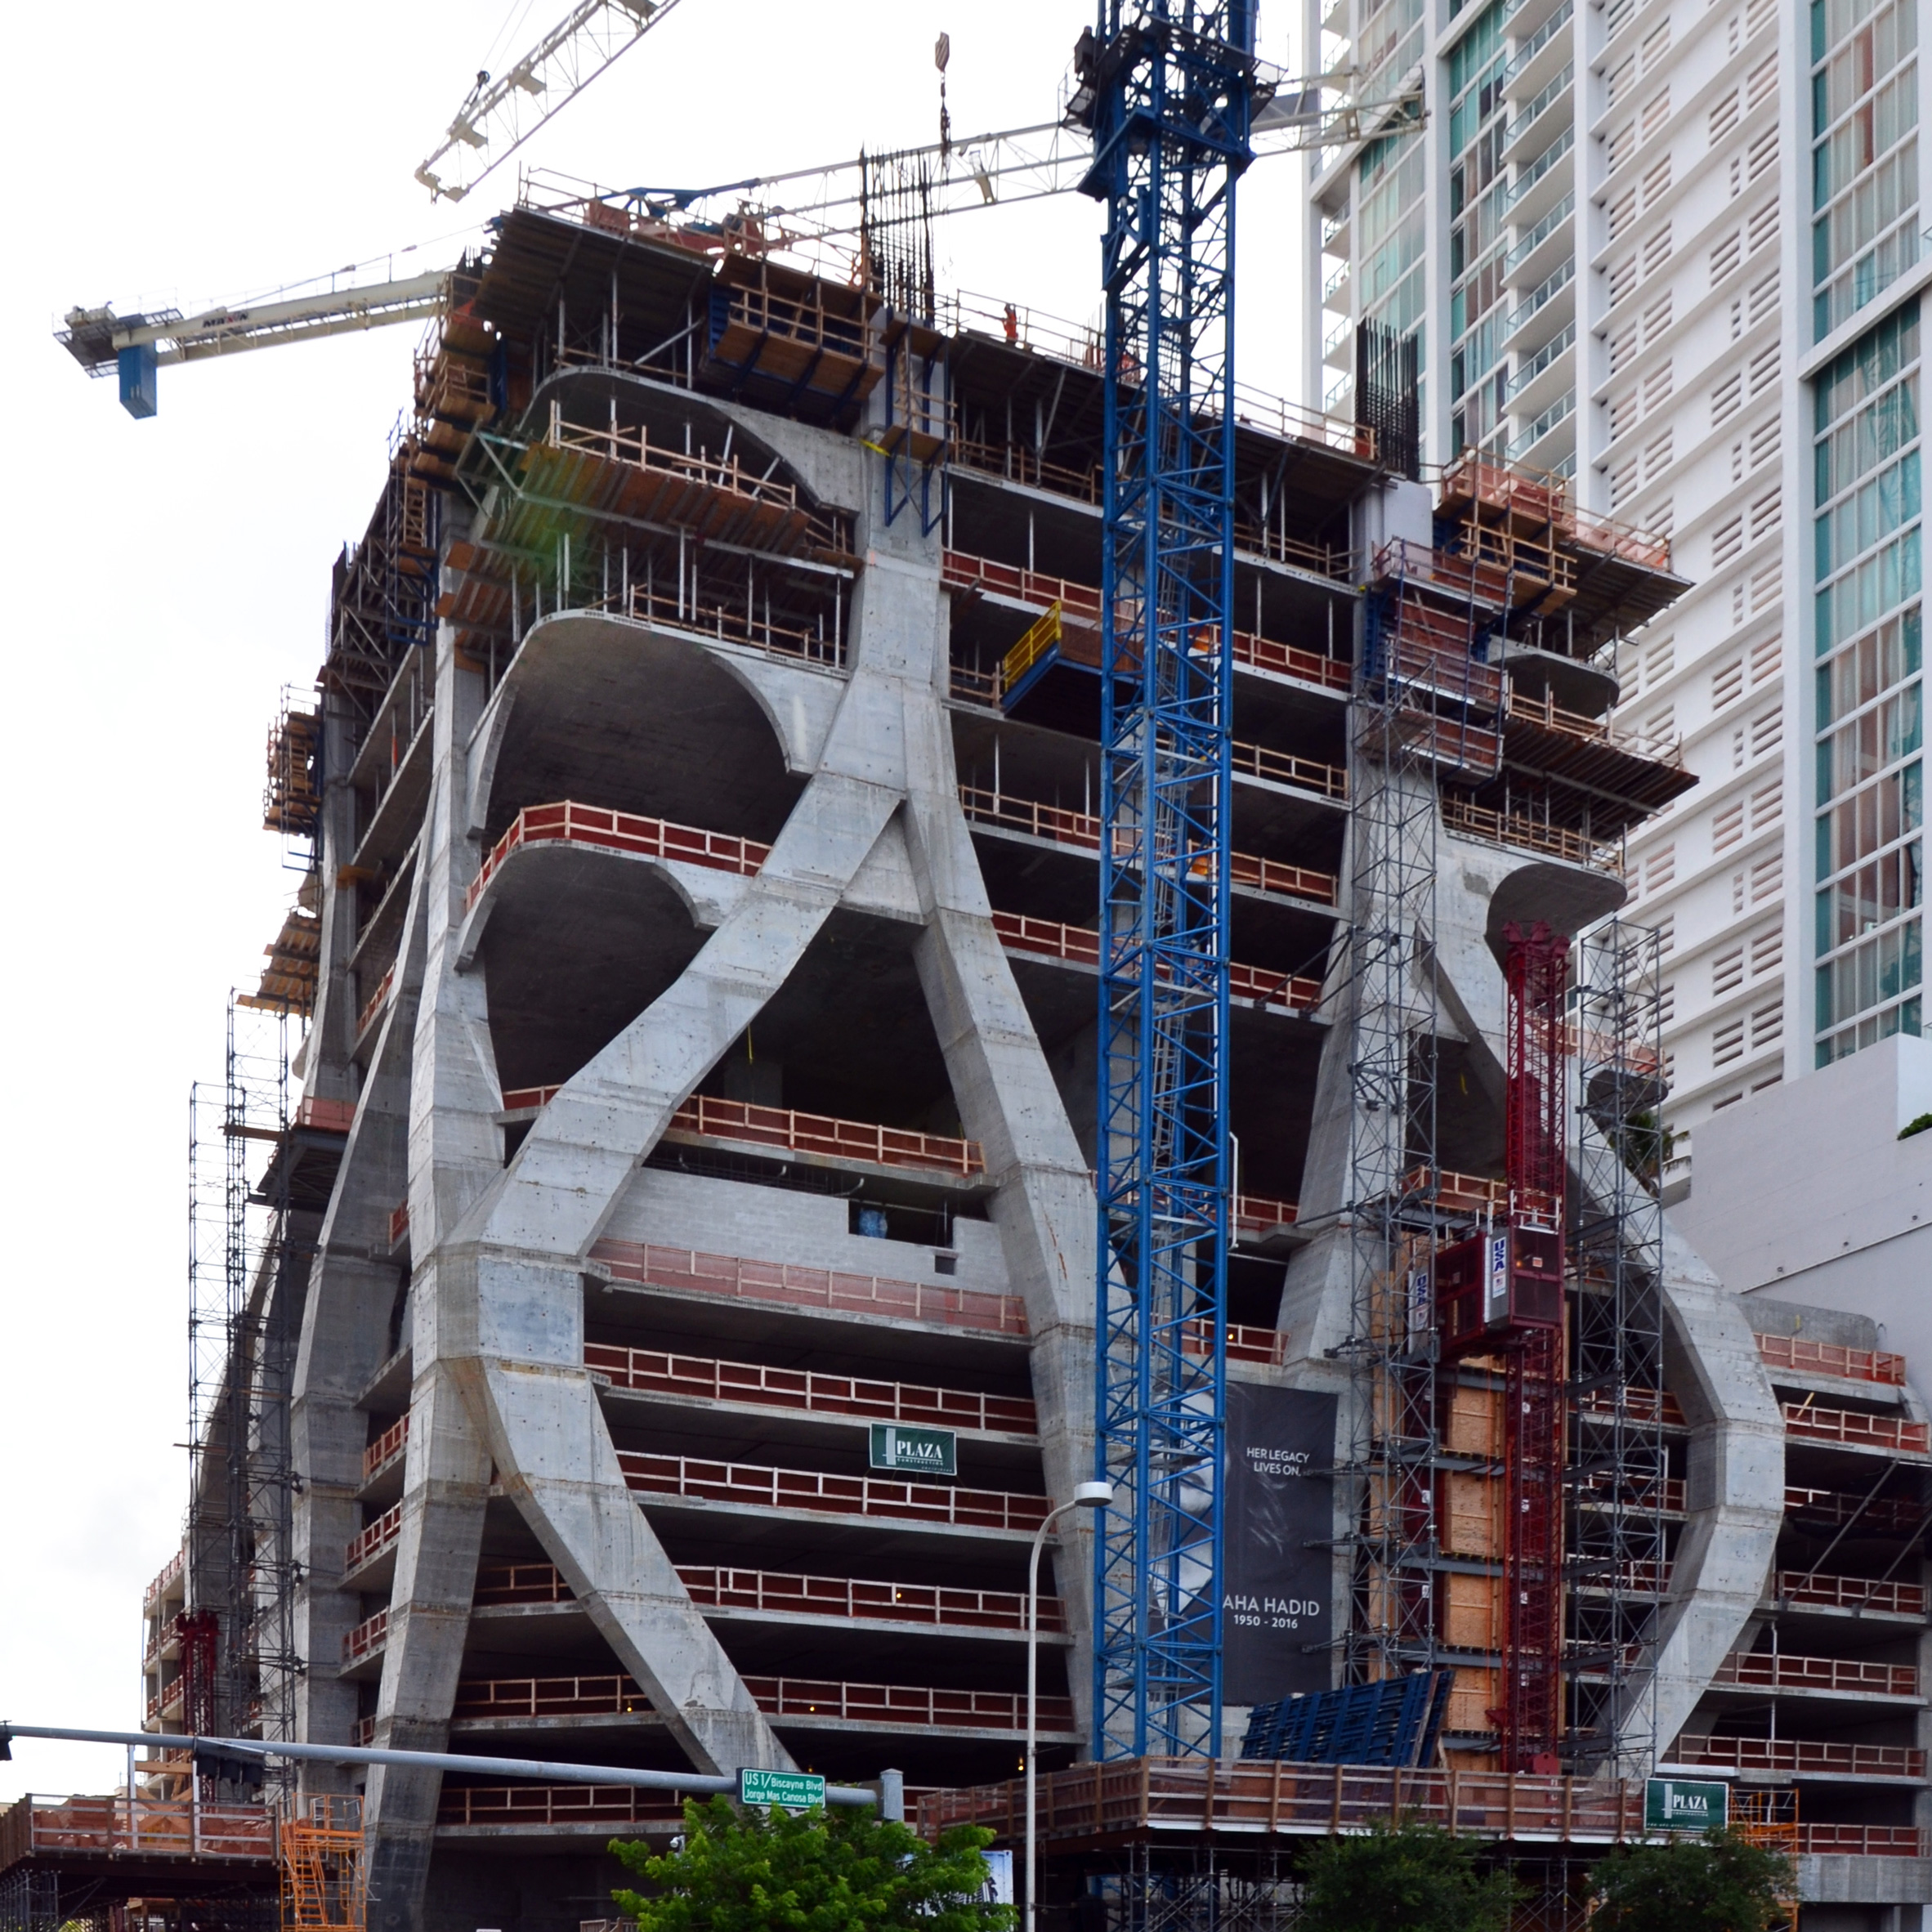 Construction Cranes Pose Threat To Miami Residents In Hurricane Irma Path